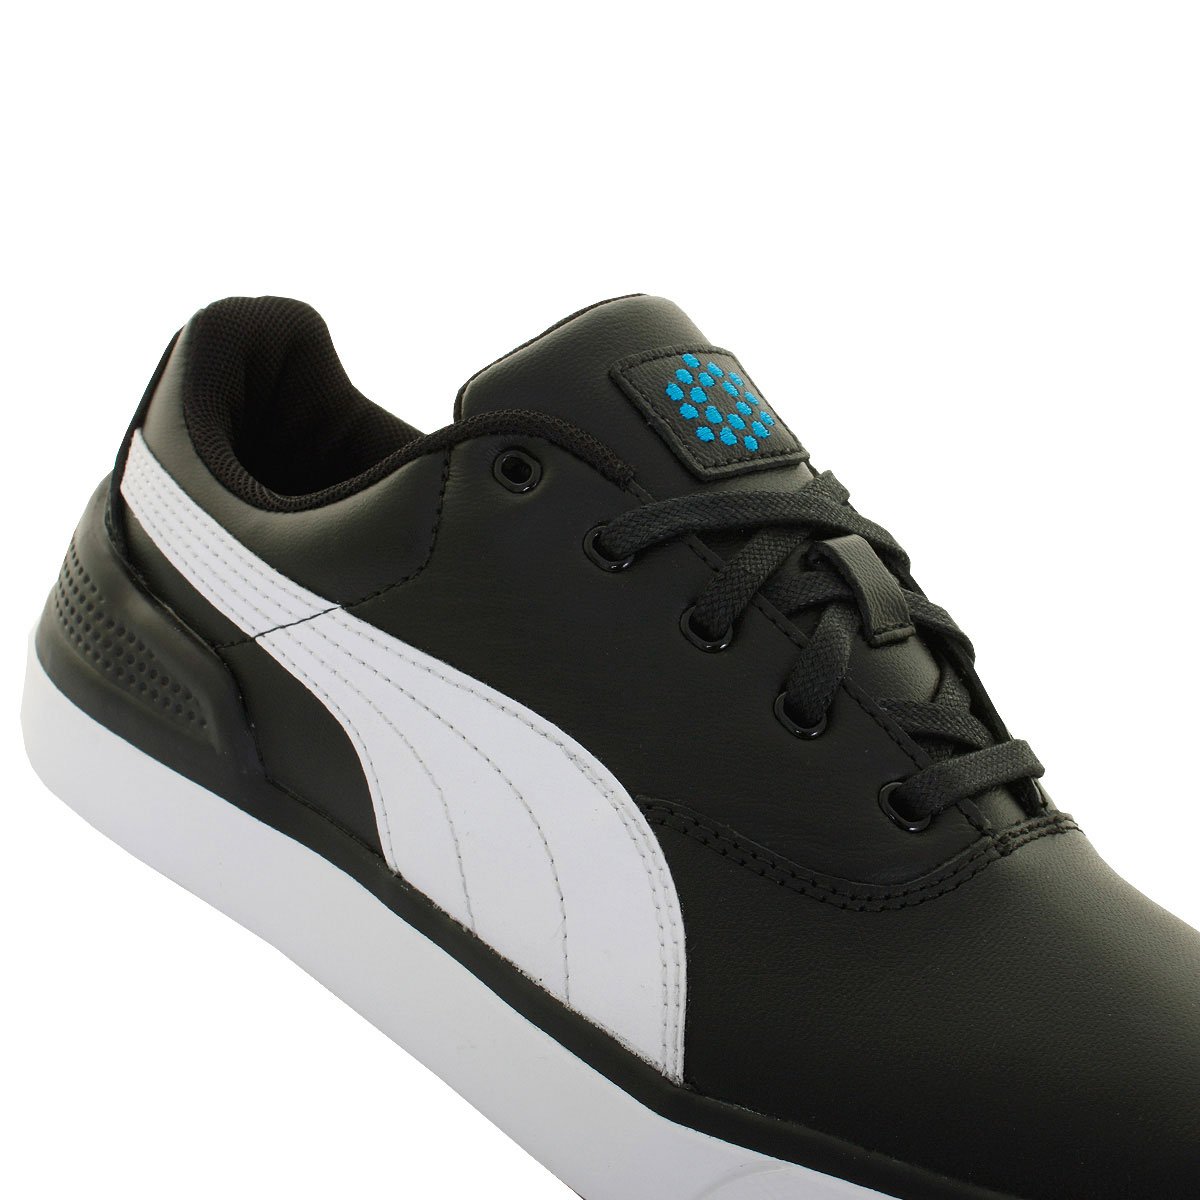 Puma Golf Mens Monolite 2.0 Golf Shoes Spikeless Waterproof Leather ... e1a1d5740